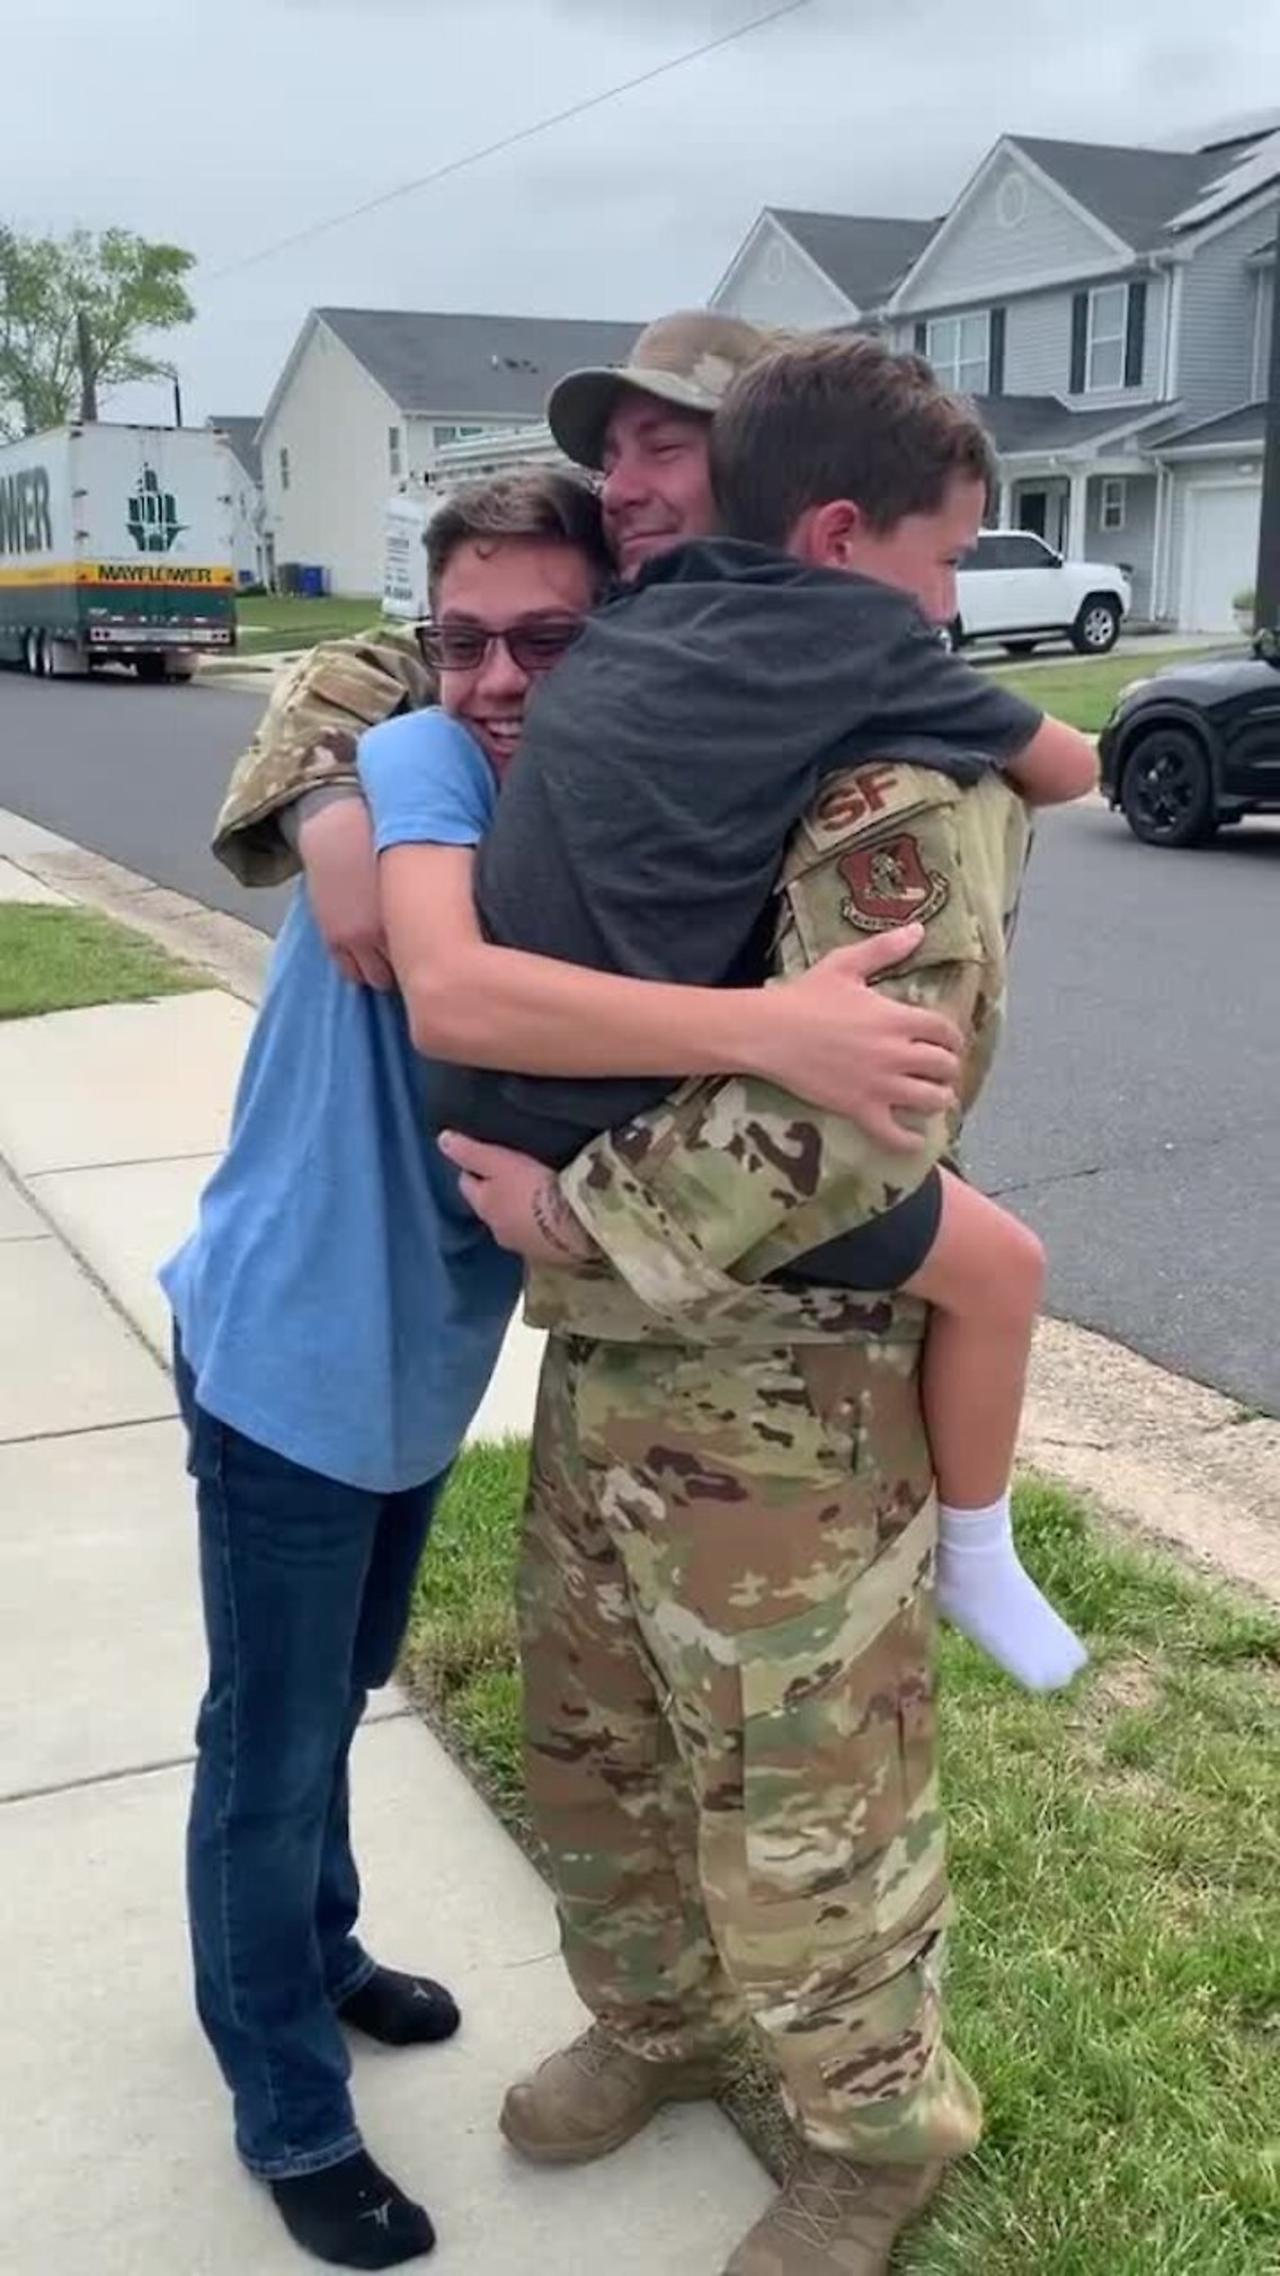 Dad comes home early from deployment to surprise the kids